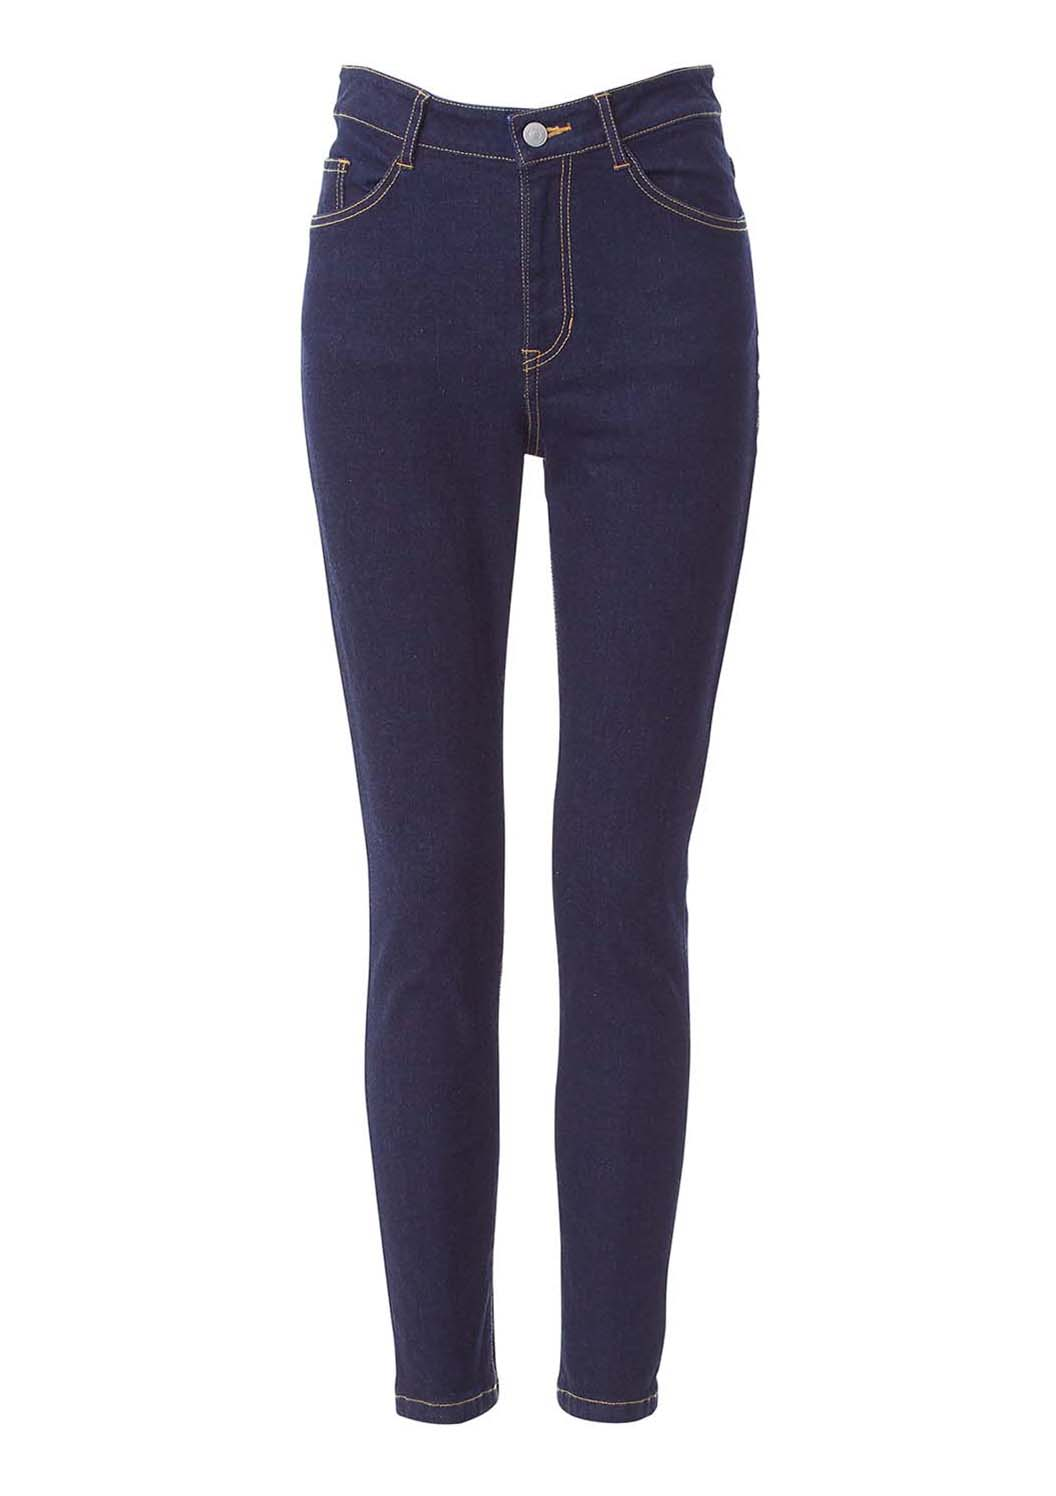 BASIC SKINNY DENIM PANTS(36)